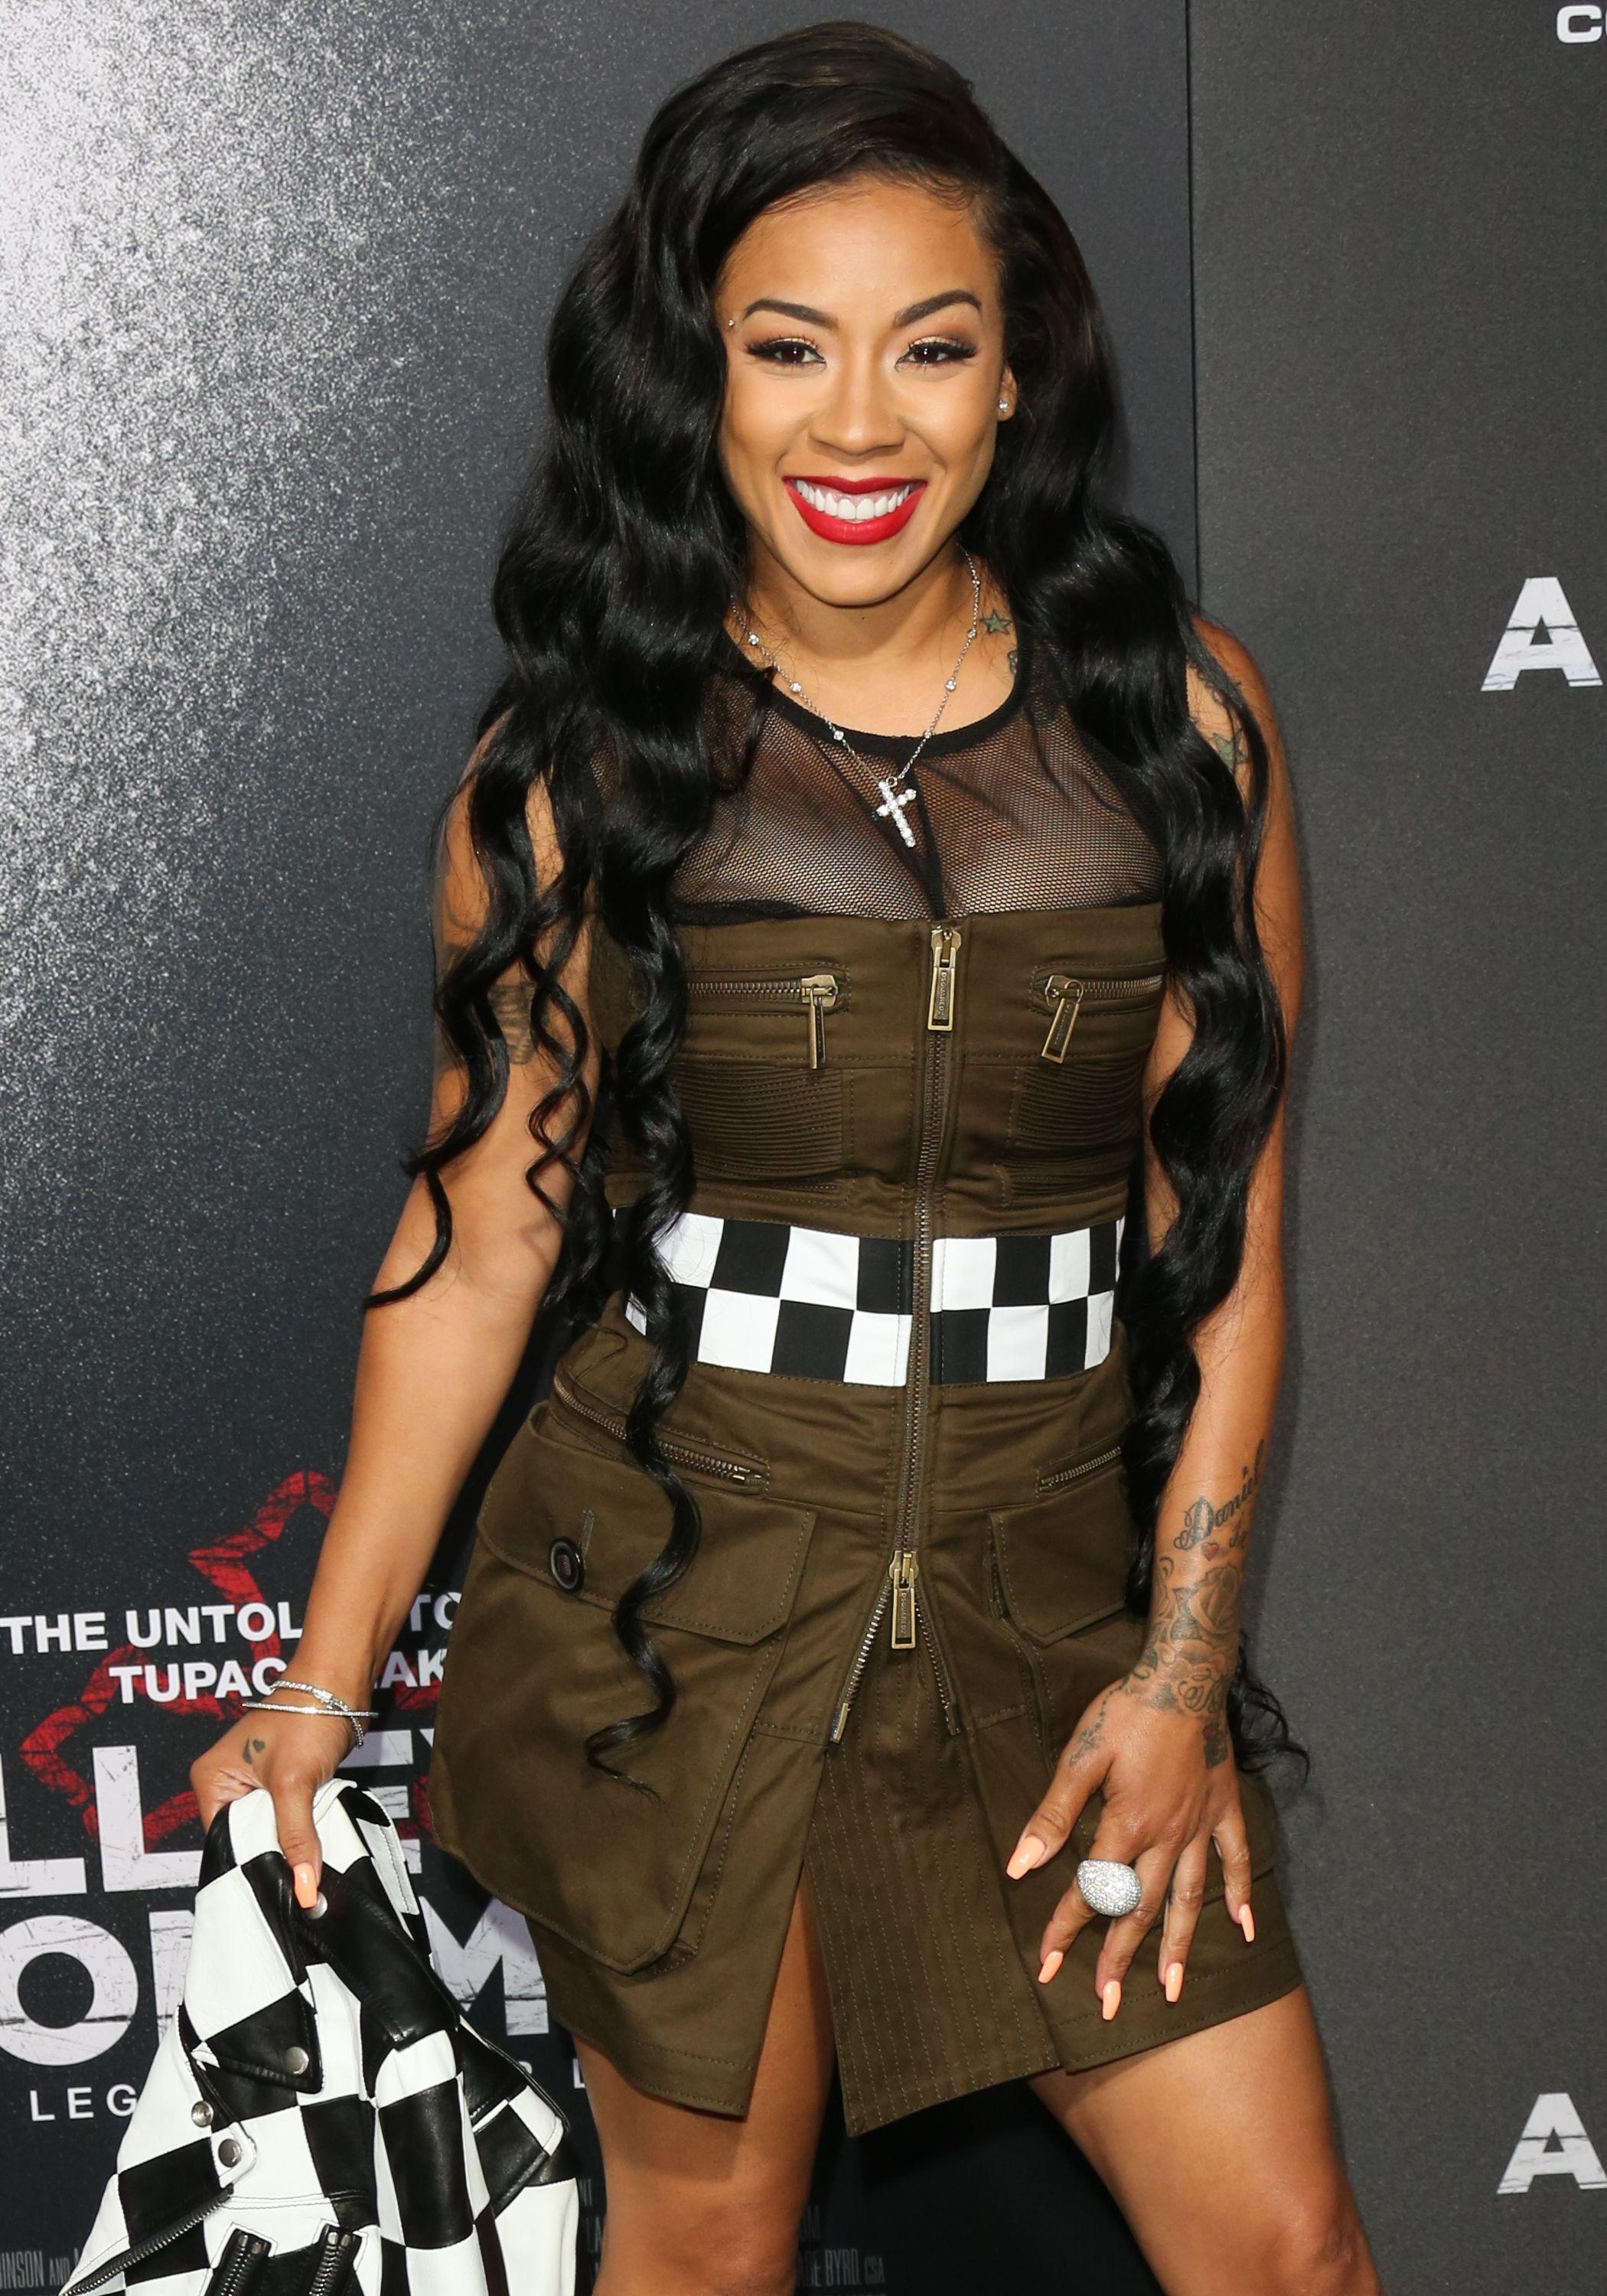 """Keyshia Cole during the premiere of Lionsgate's """"All Eyez On Me"""" on June 14, 2017 in Los Angeles, California.   Source: Getty Images"""